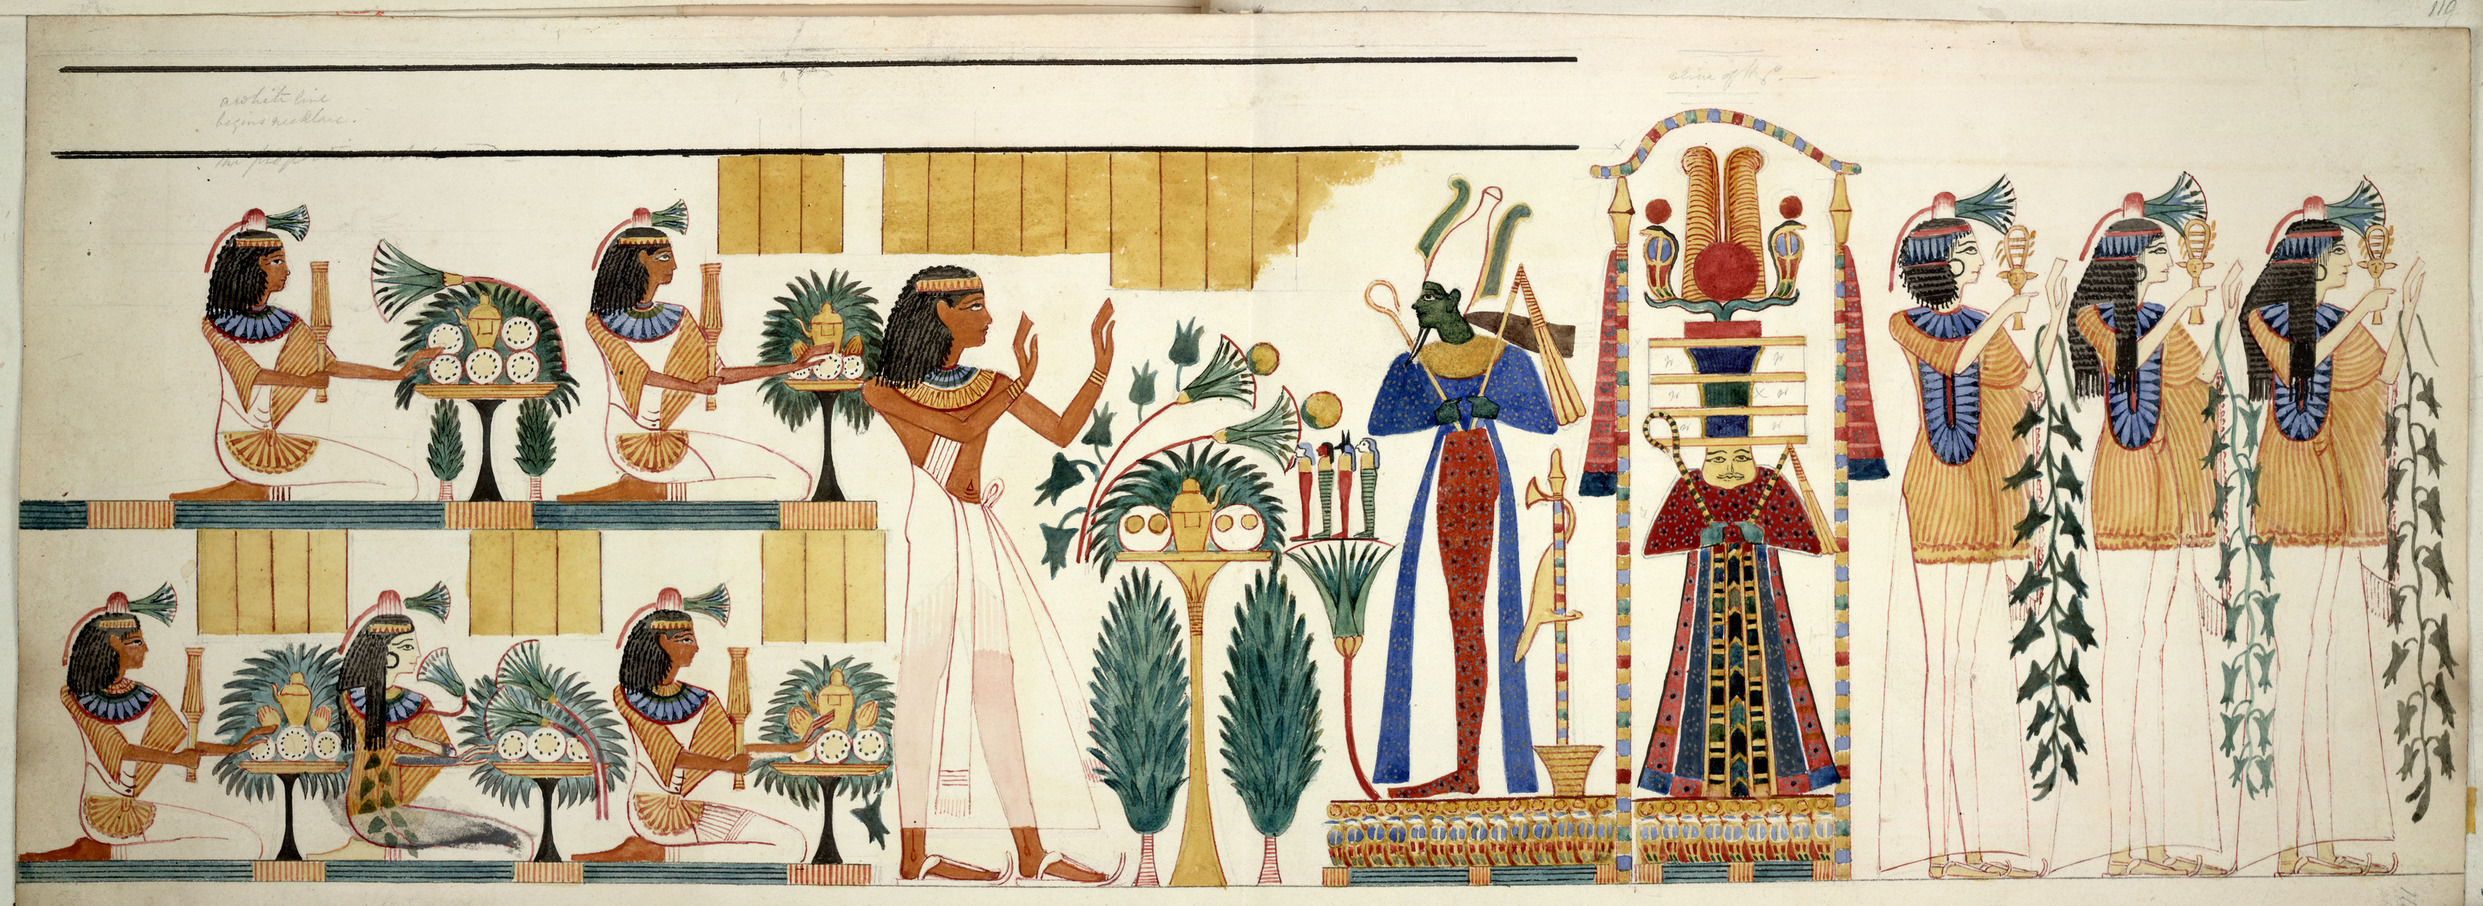 Egyptian tomb wall-painting. Procession of figures with offerings; part of a wall-painting from the tenth tomb at Gourna, Thebes. Made during an expedition to Egypt organised by Robert Hay between 1826 and 1838. Image courtesy of Wikimedia Commons.